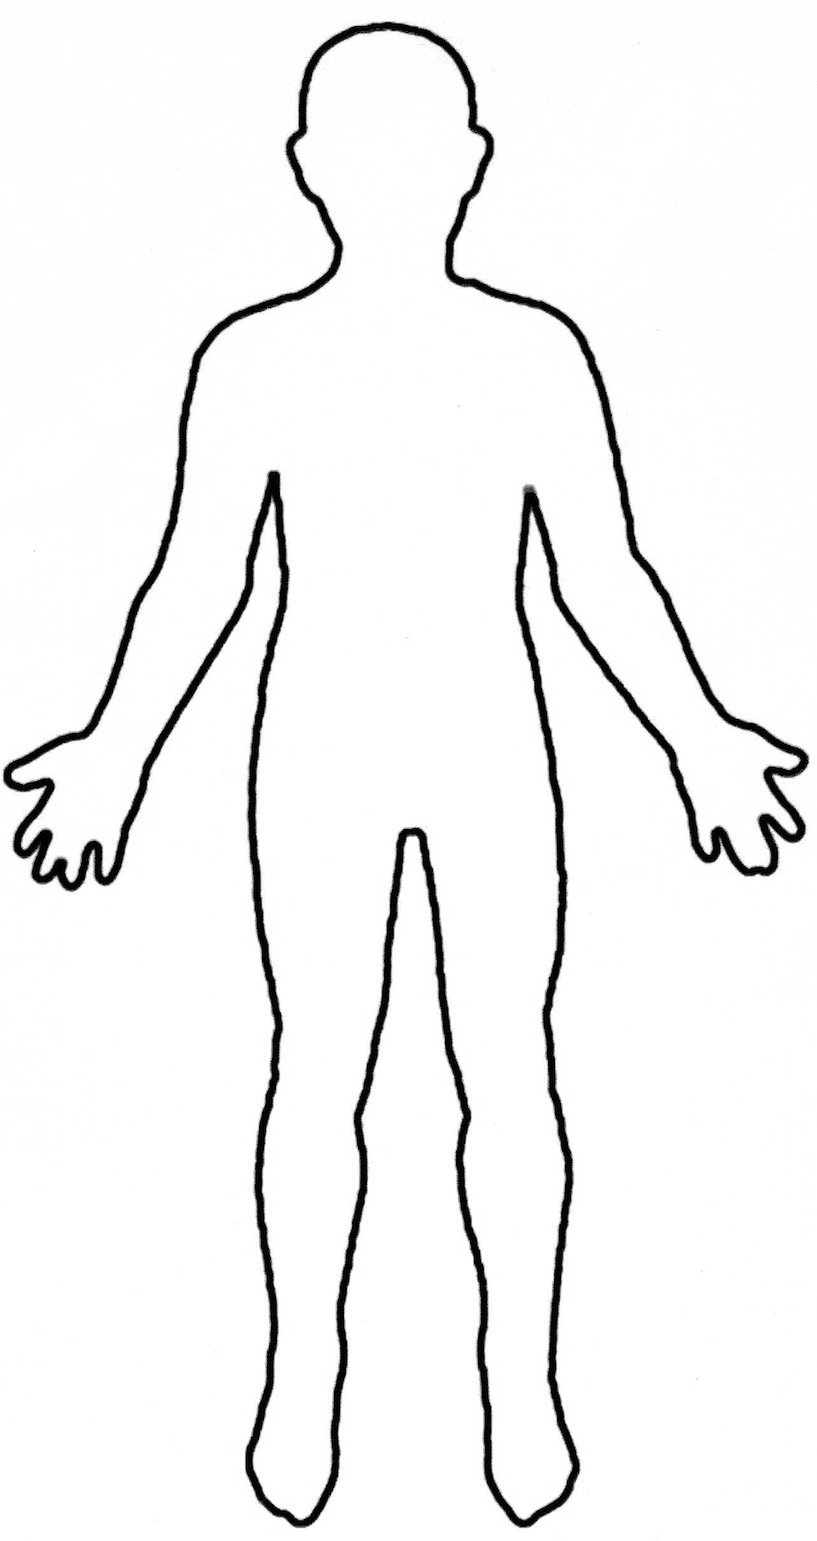 Half of a person s upper body clipart vector royalty free download Human Body Outline Printable | Free download best Human Body Outline ... vector royalty free download